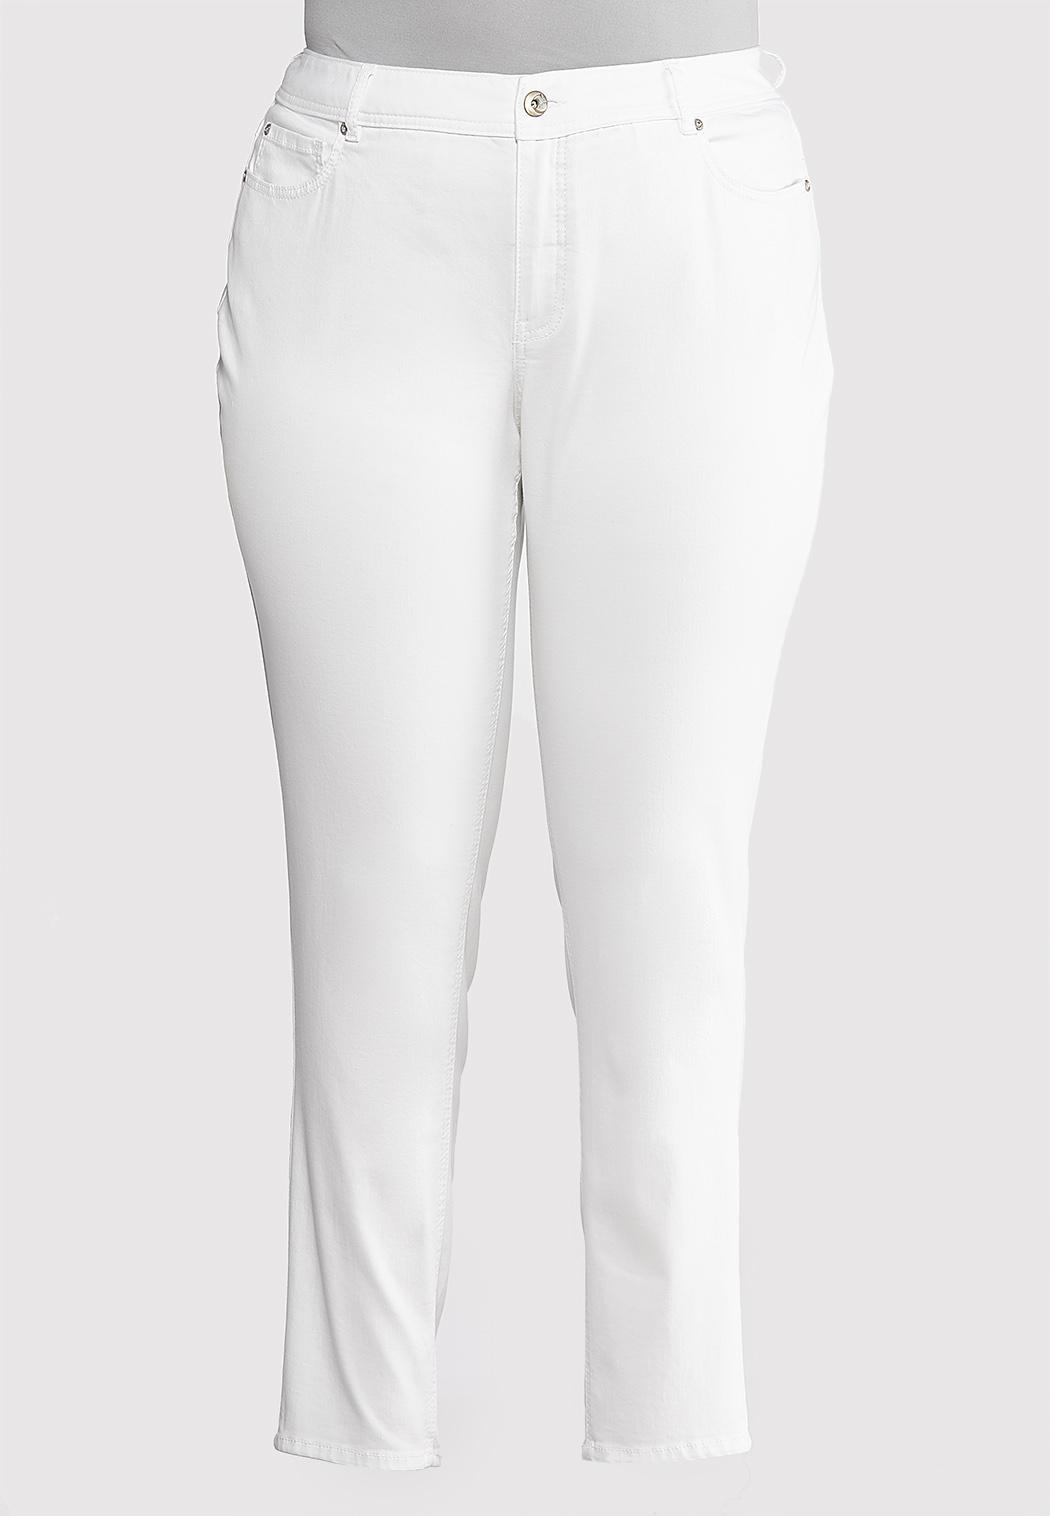 Plus Extended Skinny Stretch Jeans